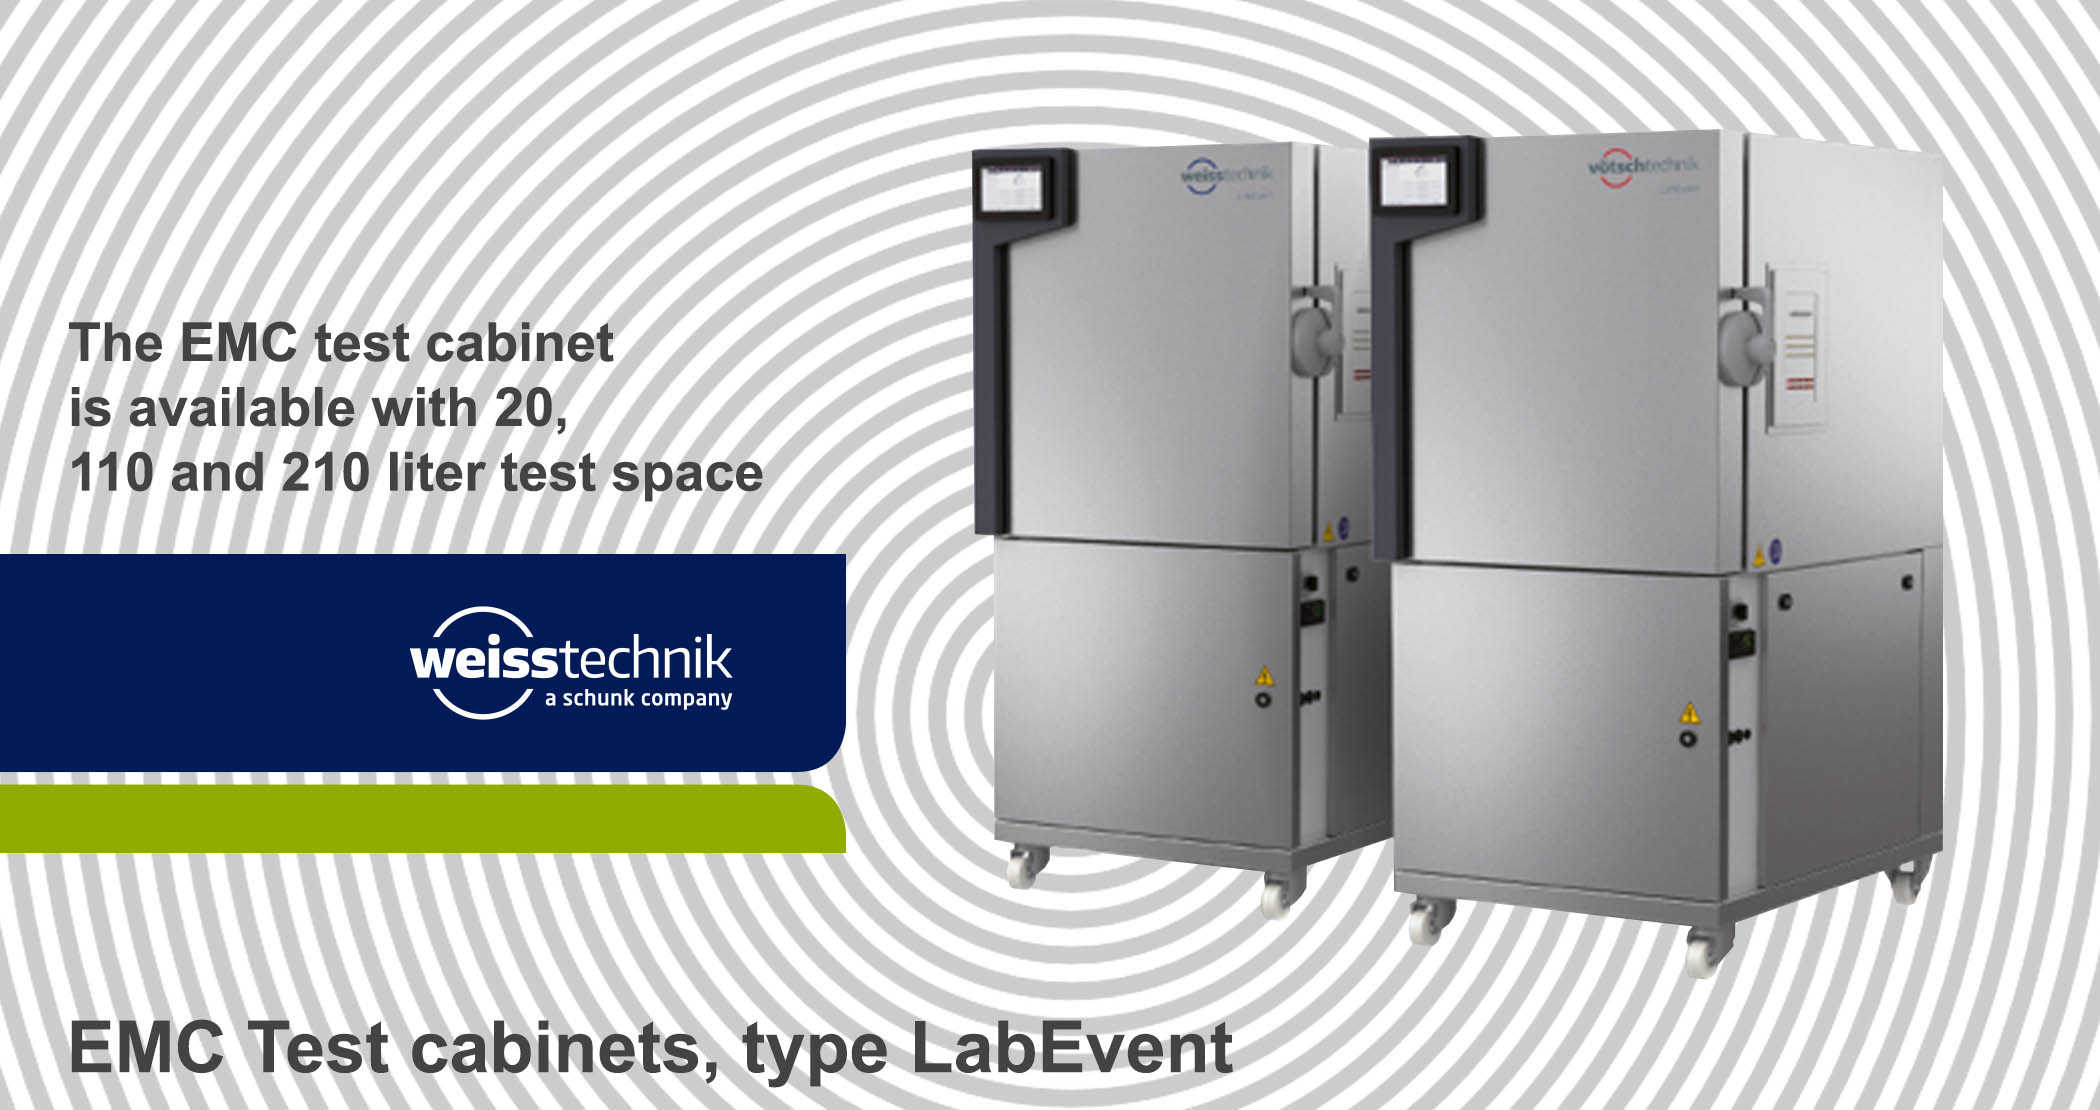 EMC Test cabinets, type LabEvent - Laboratory test chambers